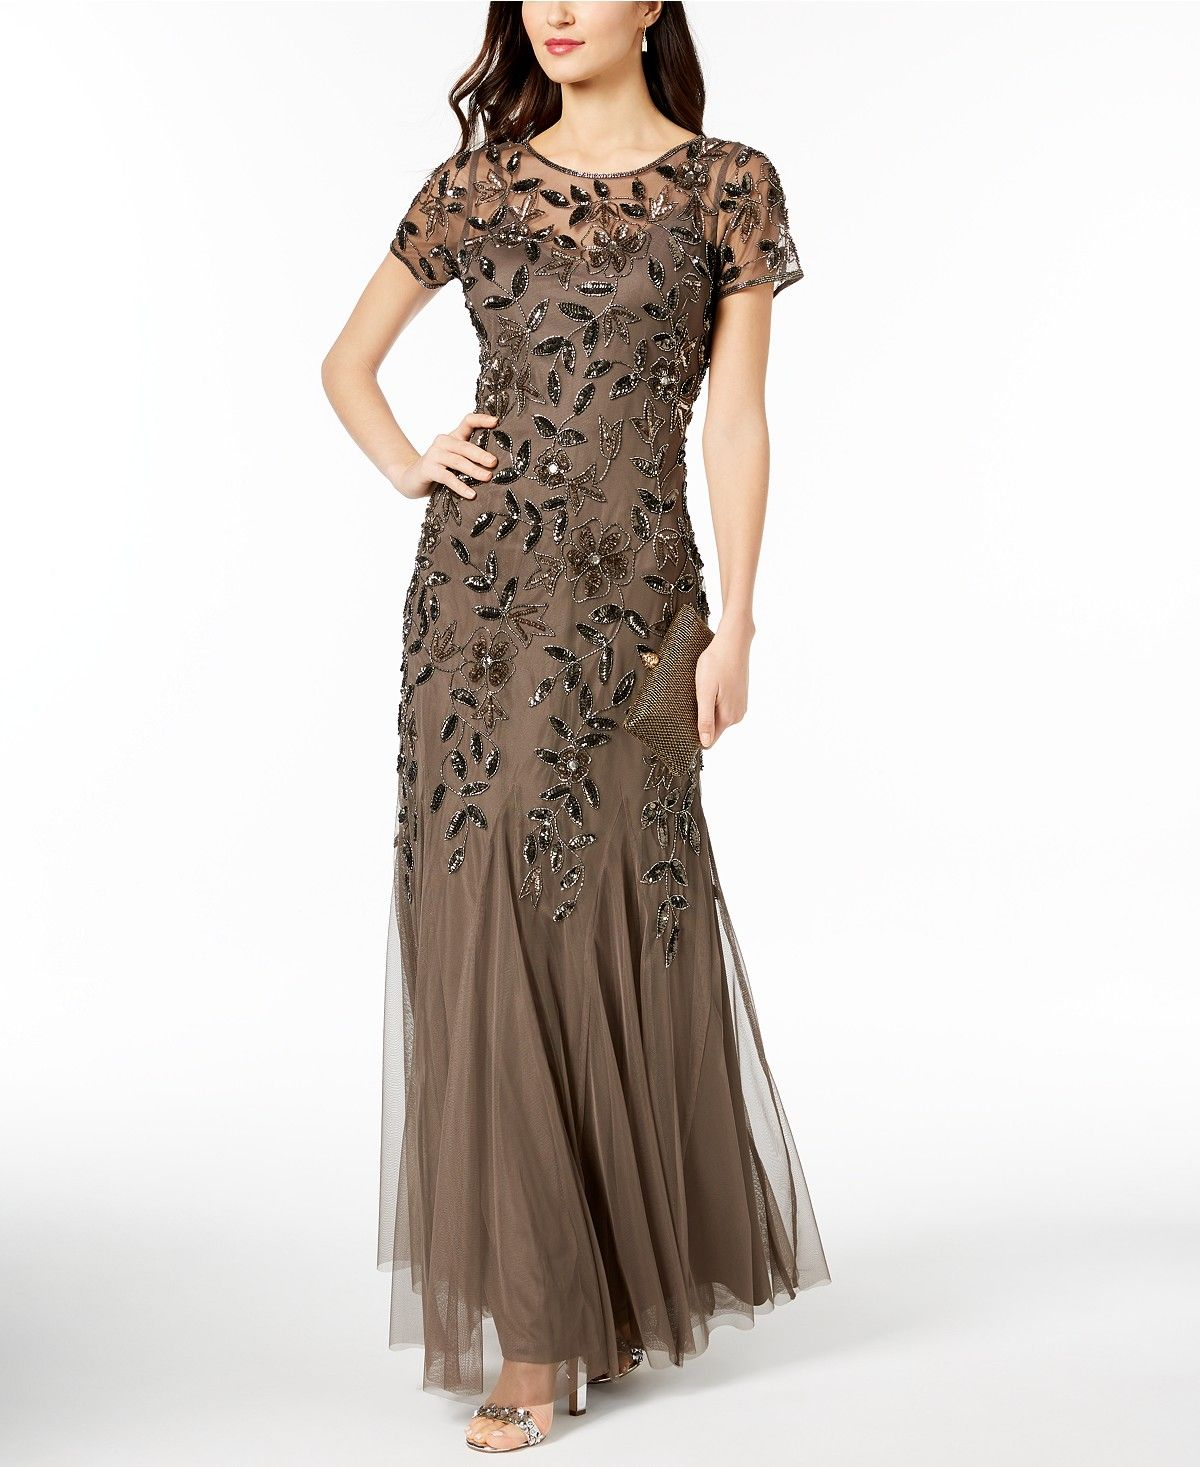 Adrianna Papell Floral Beaded Gown Reviews Dresses Women Macy S Womens Dresses Beaded Gown Evening Dresses With Sleeves